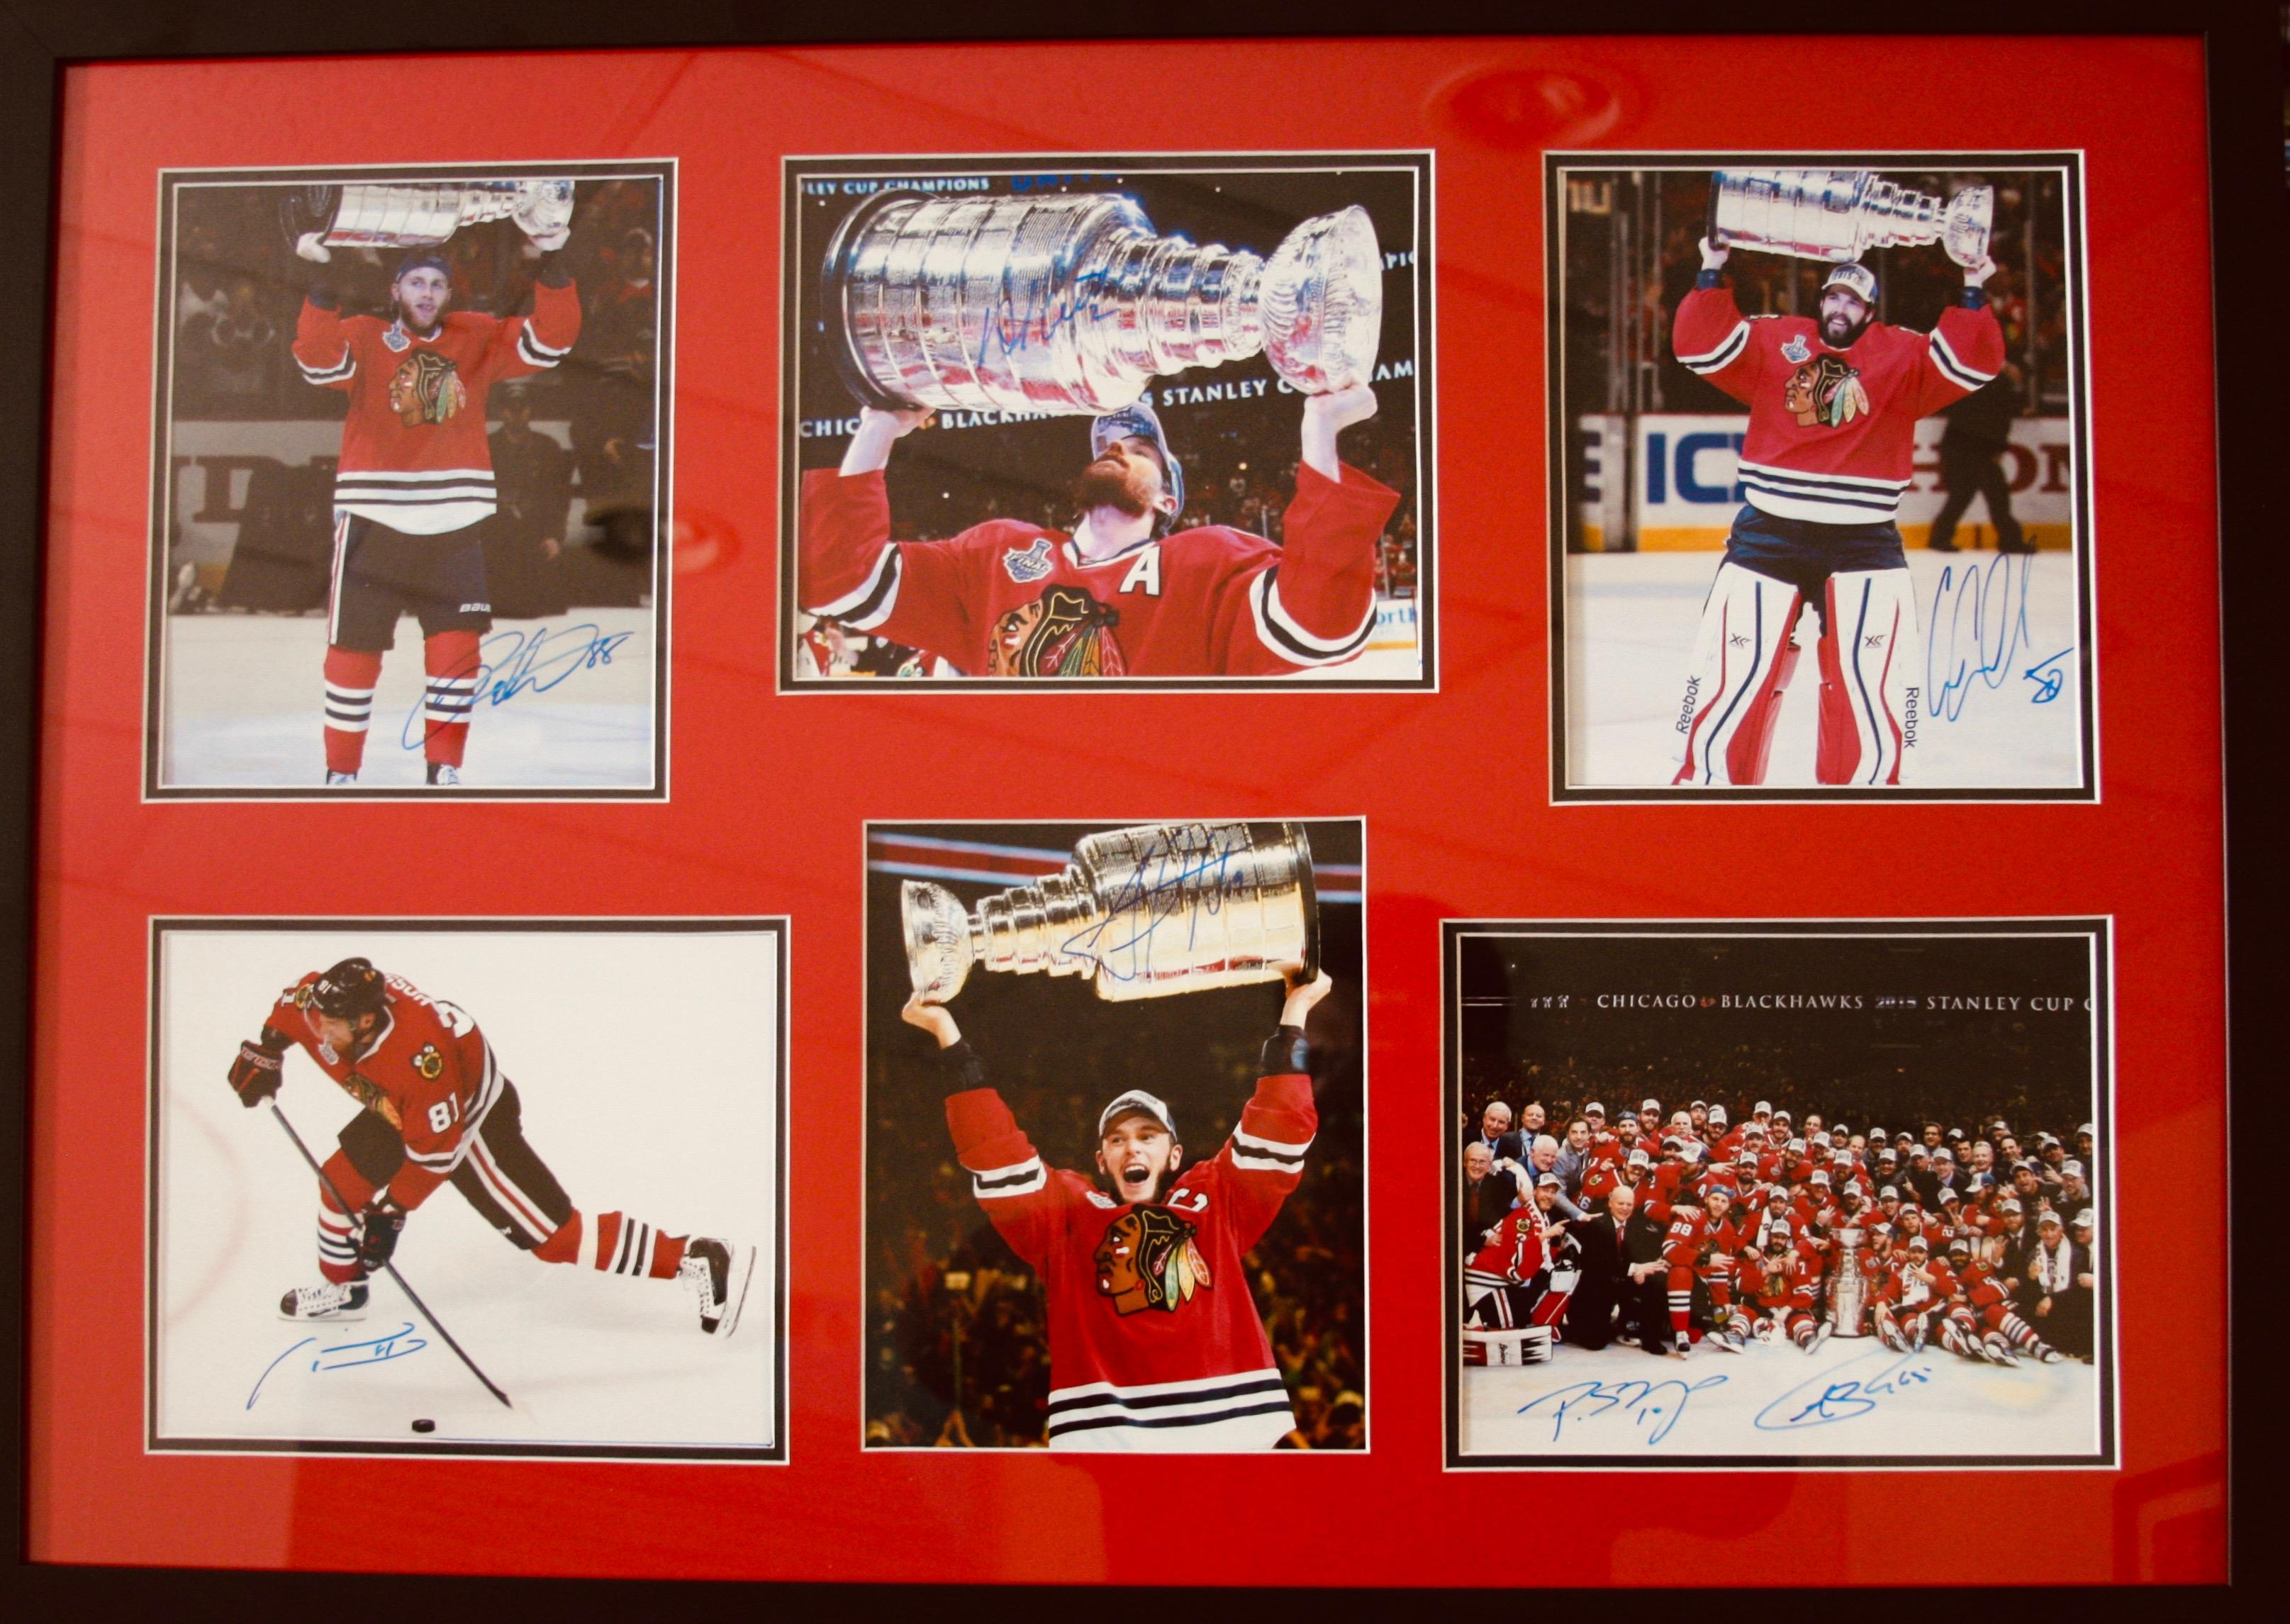 poster of blackhawks collage